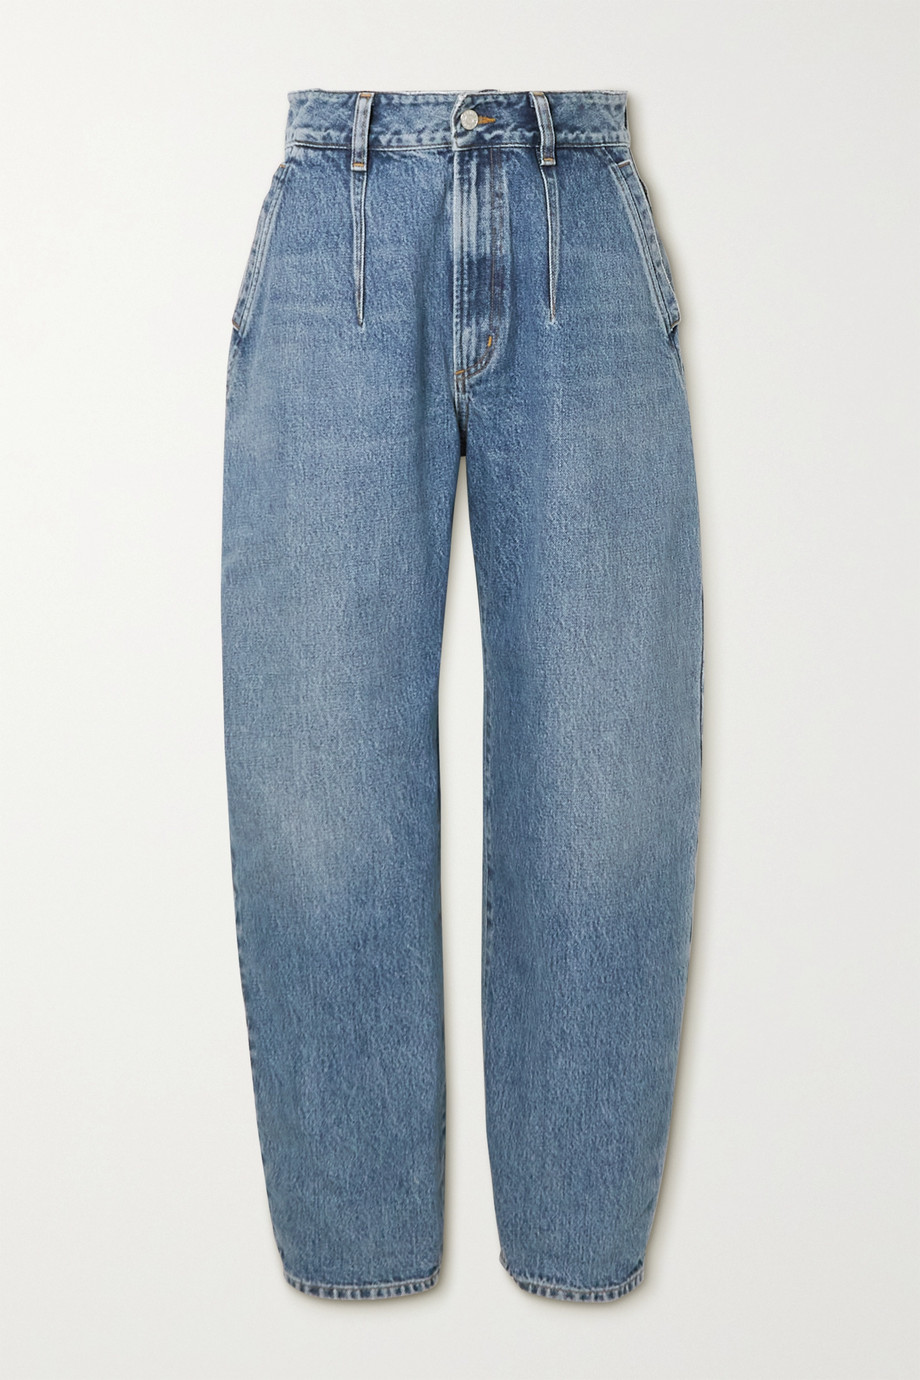 AGOLDE + NET SUSTAIN Balloon organic high-rise straight-leg jeans